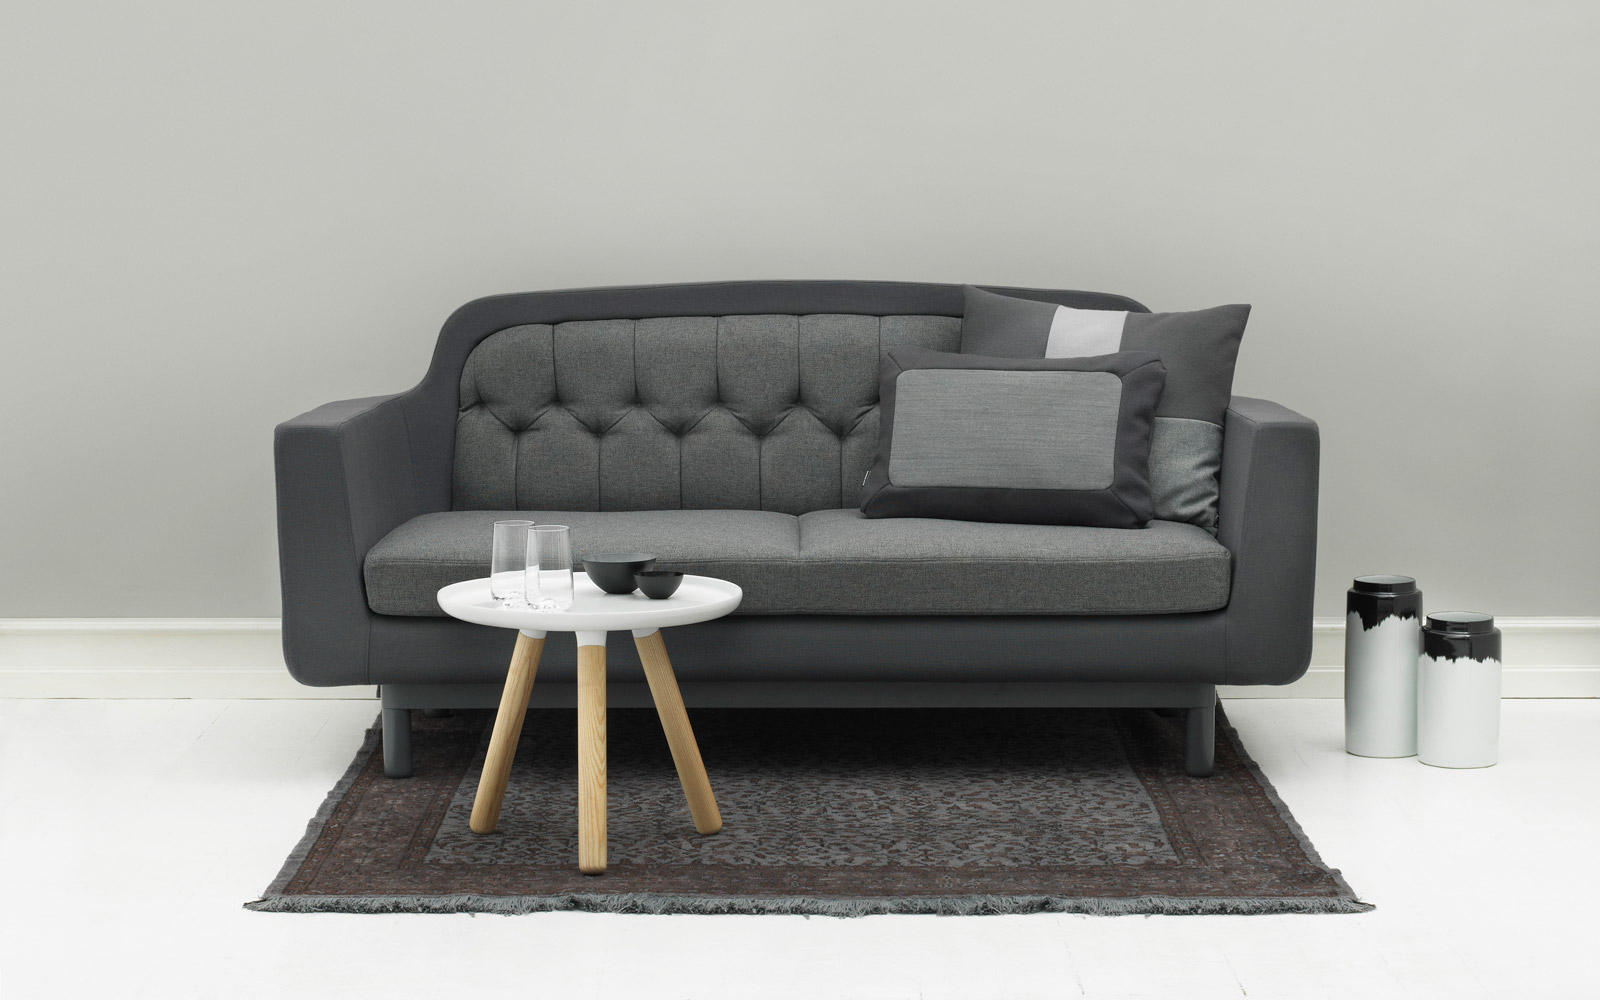 onkel sofa recognizable scandinavian design fabrics from gabriel. Black Bedroom Furniture Sets. Home Design Ideas